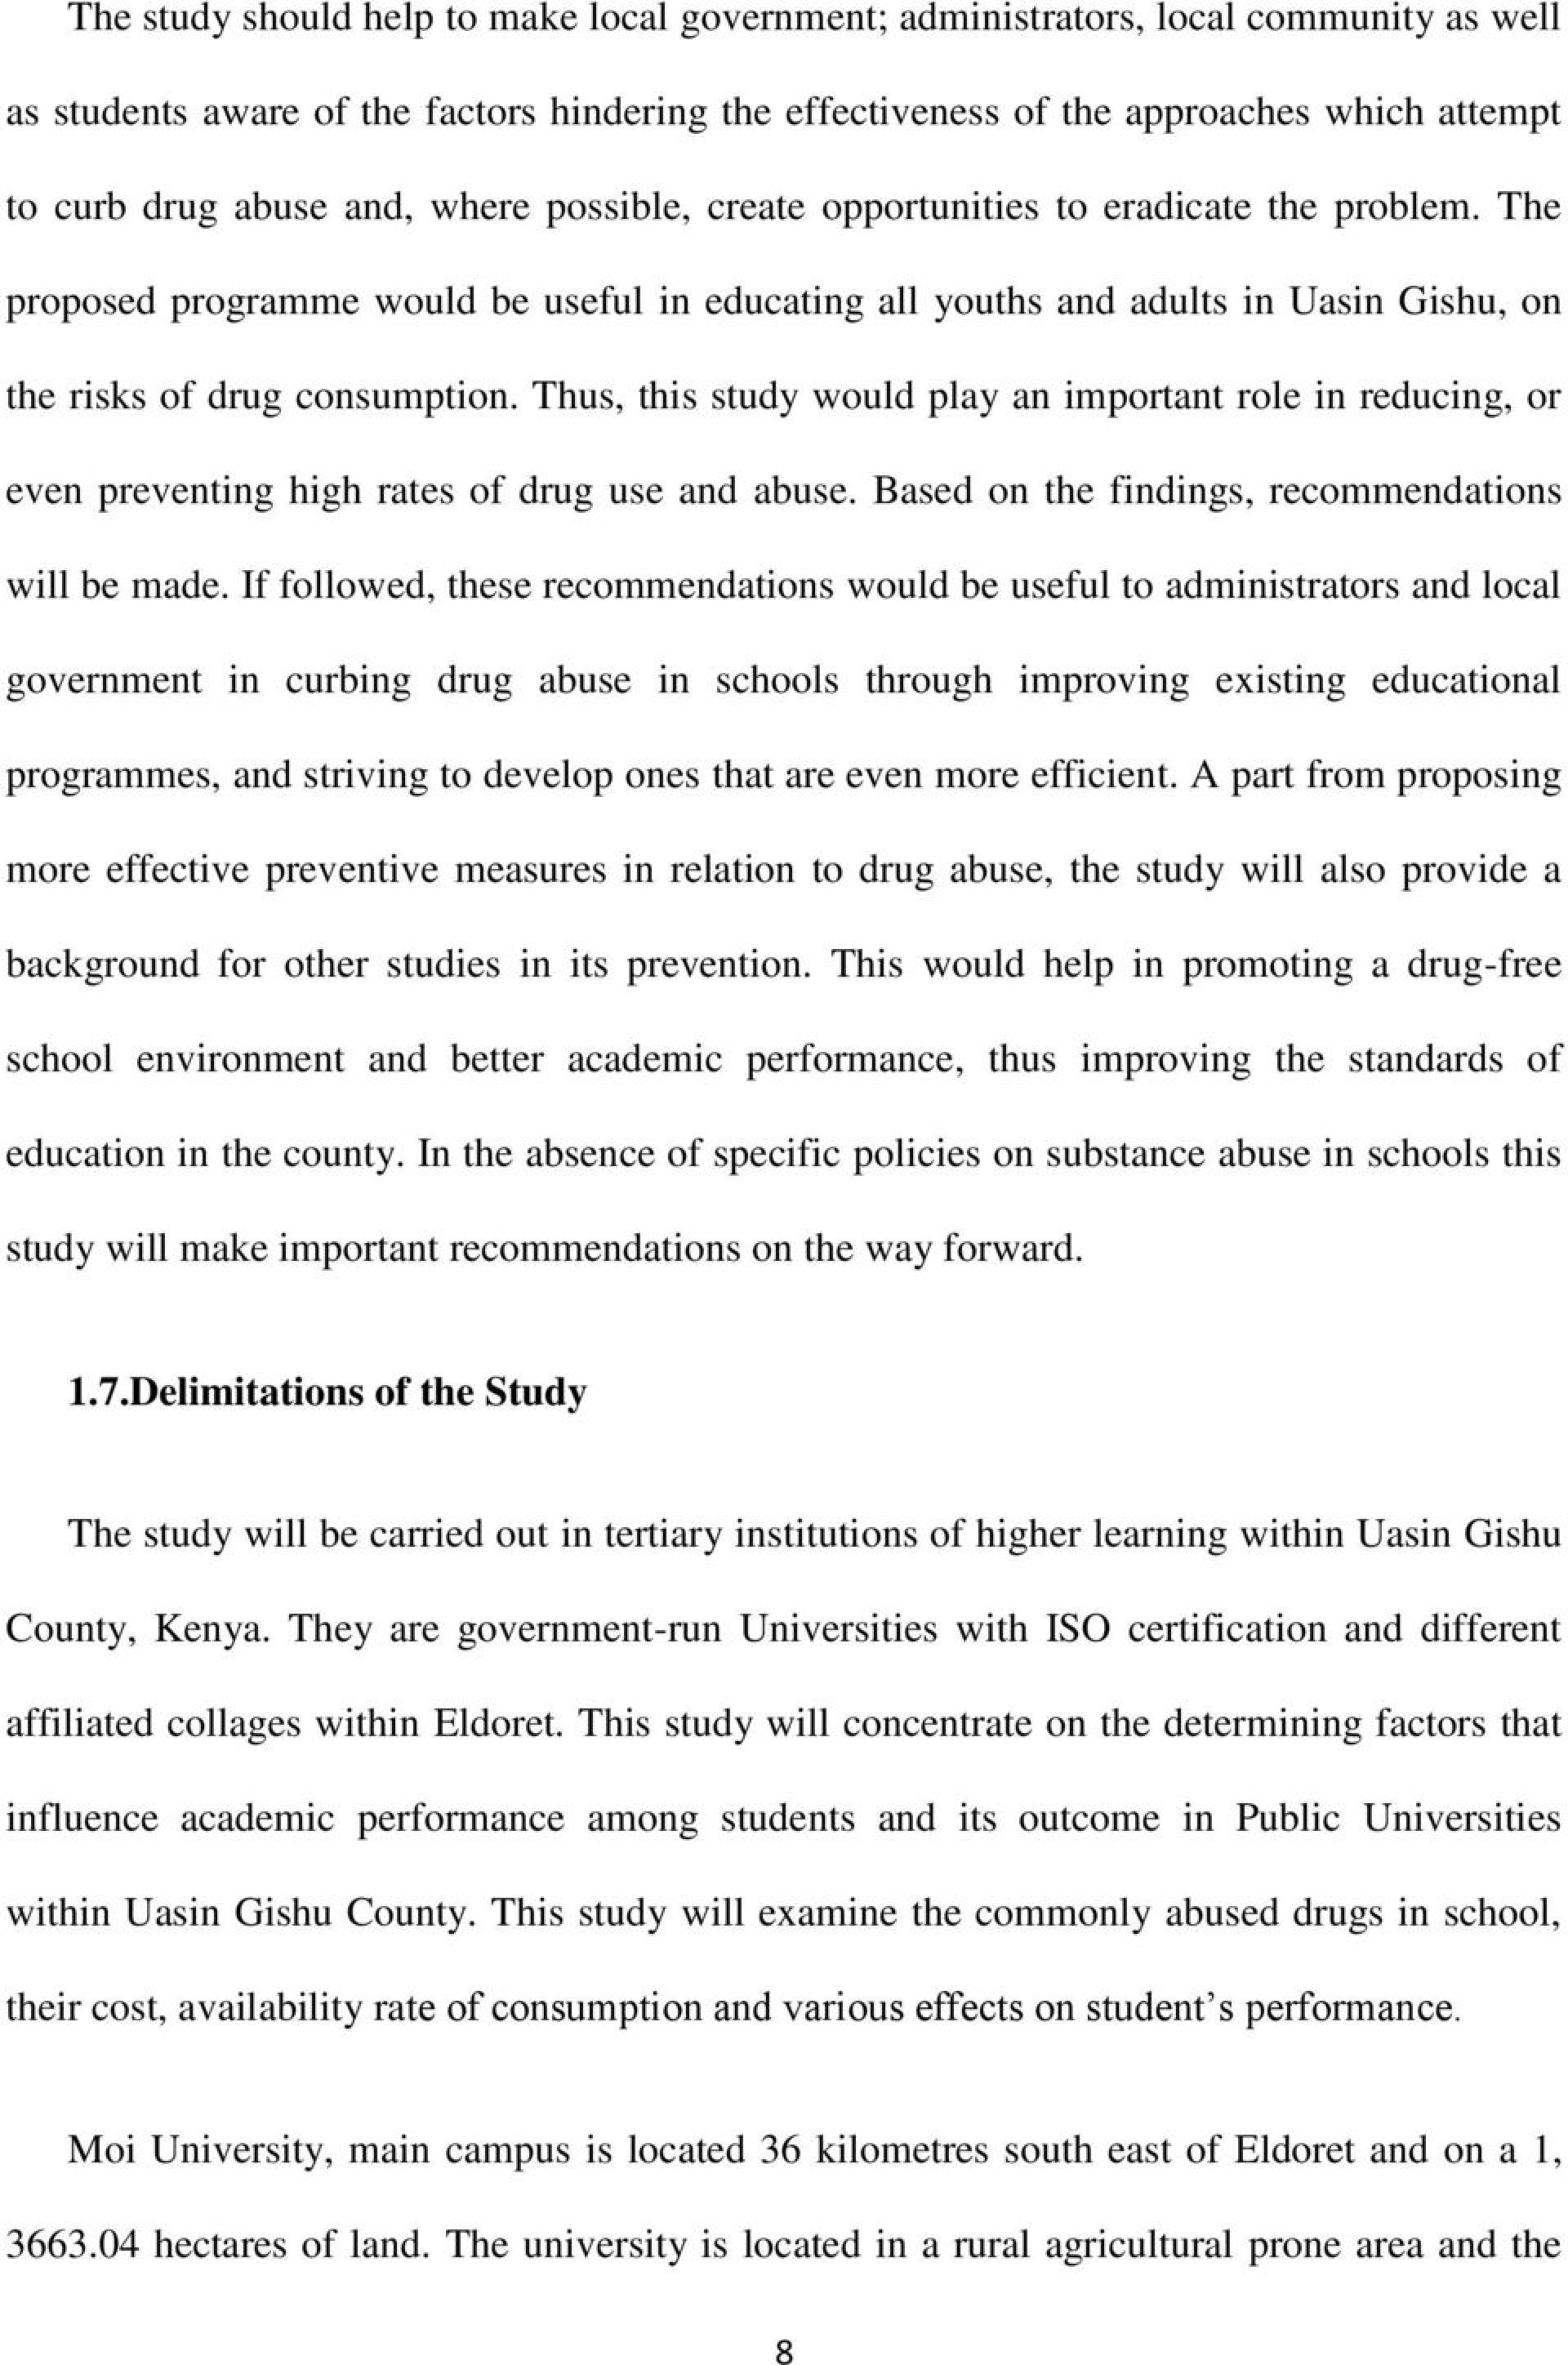 002 Drug Addiction Essay Drugs Essays Topics Abuse College Pa In Students Stunning Pdf 1920